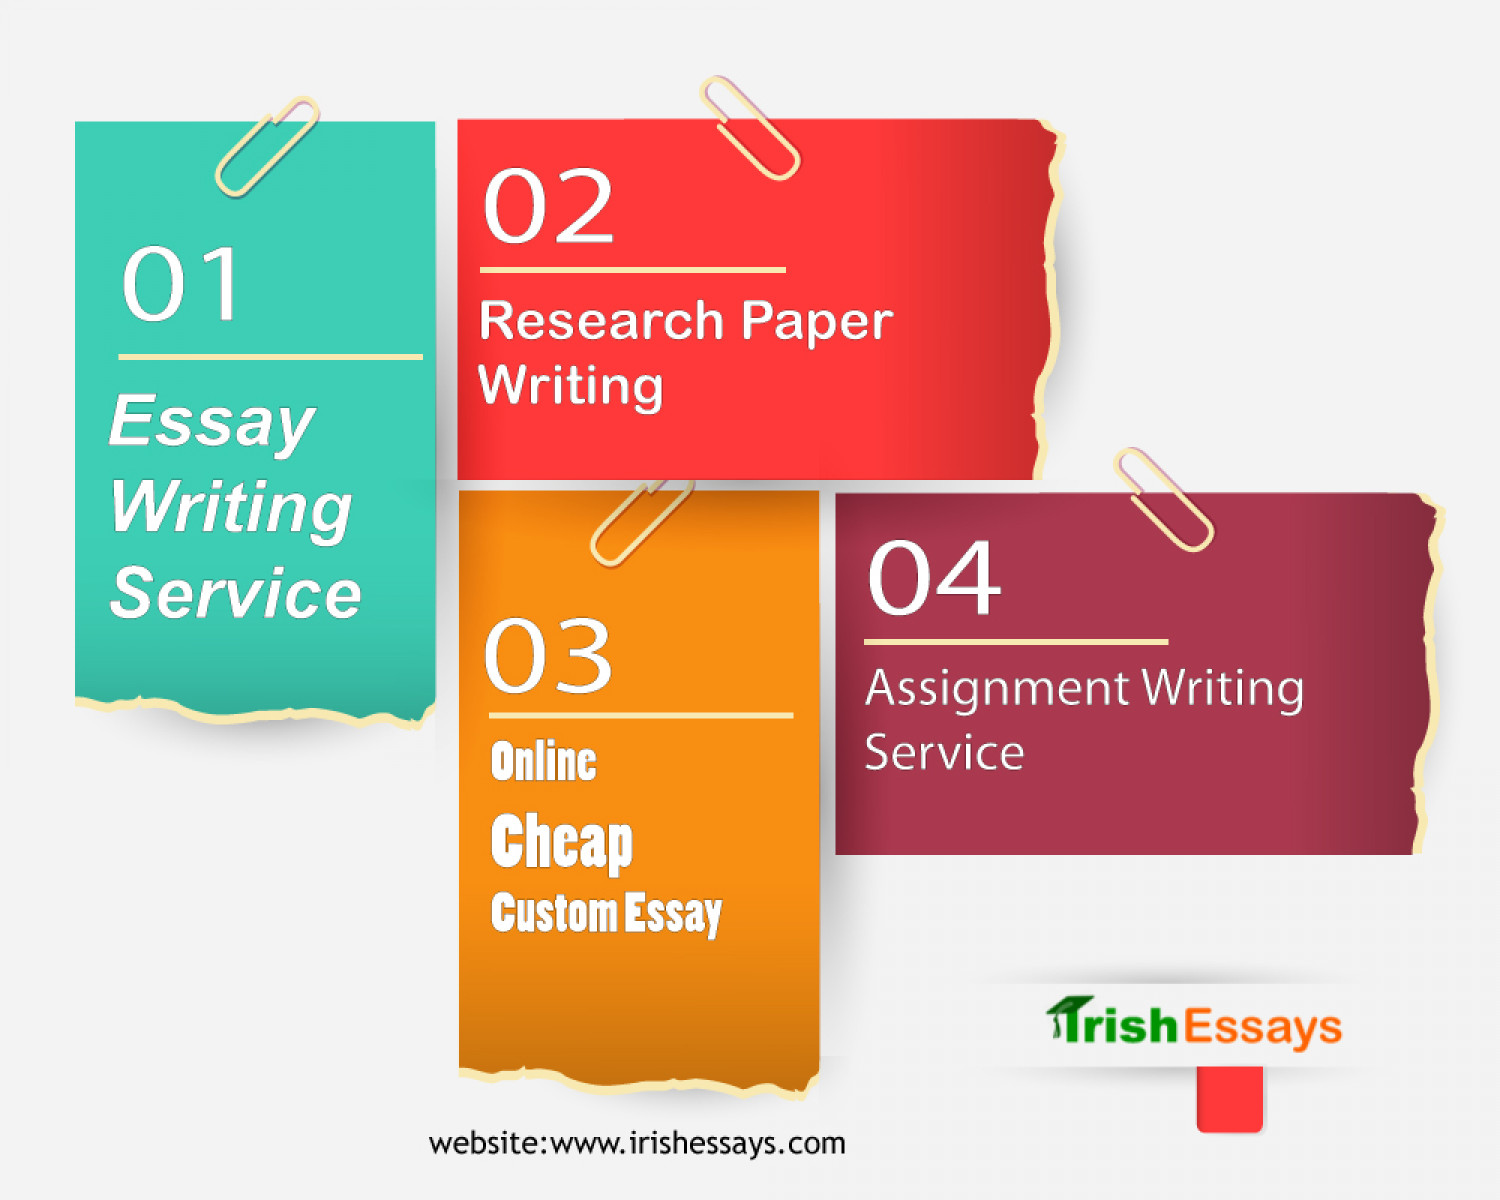 custom essay online essay writing service review com buy custom  write essays for pay research pay someone to write your essay millicent rogers museum essay writer write me popular custom essay online